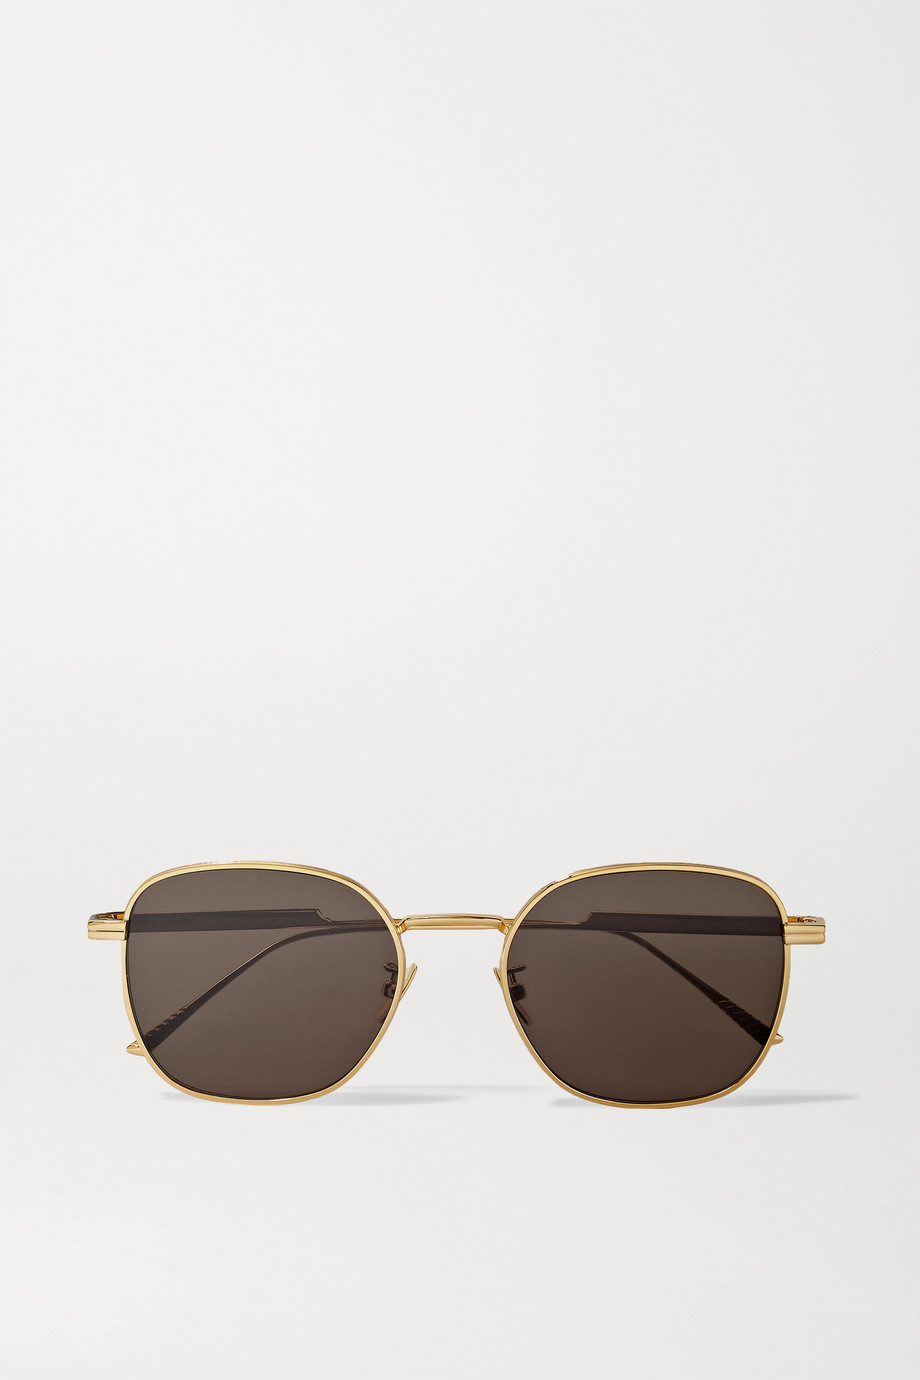 Bottega Veneta Light Ribbon square-frame gold-tone sunglasses